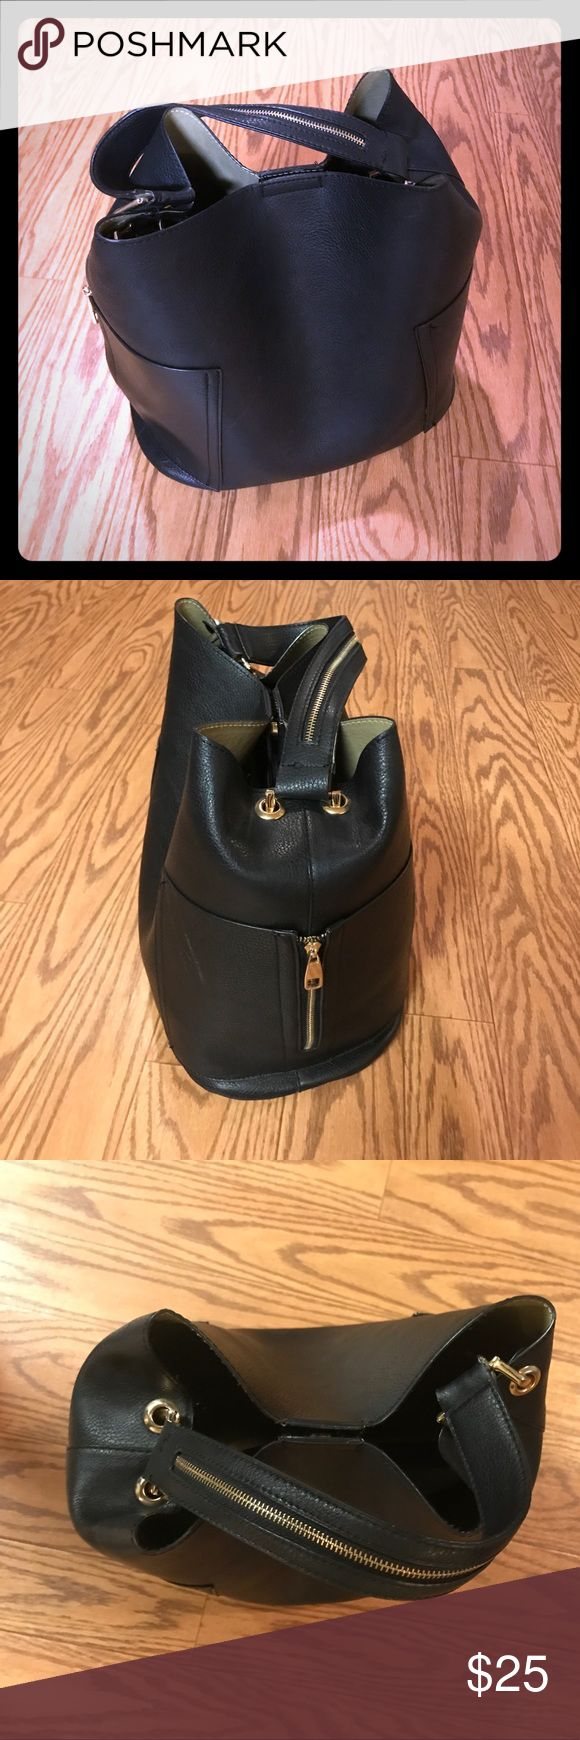 Black Pleather Hobo Shoulder Bag with Gold From a local store in my town. Big hobo shoulder bag with one big compartment and a clip in middle compartment with additional pockets. There are two side vertical zip pockets on the outside as well. It is fake leather. Bags Shoulder Bags